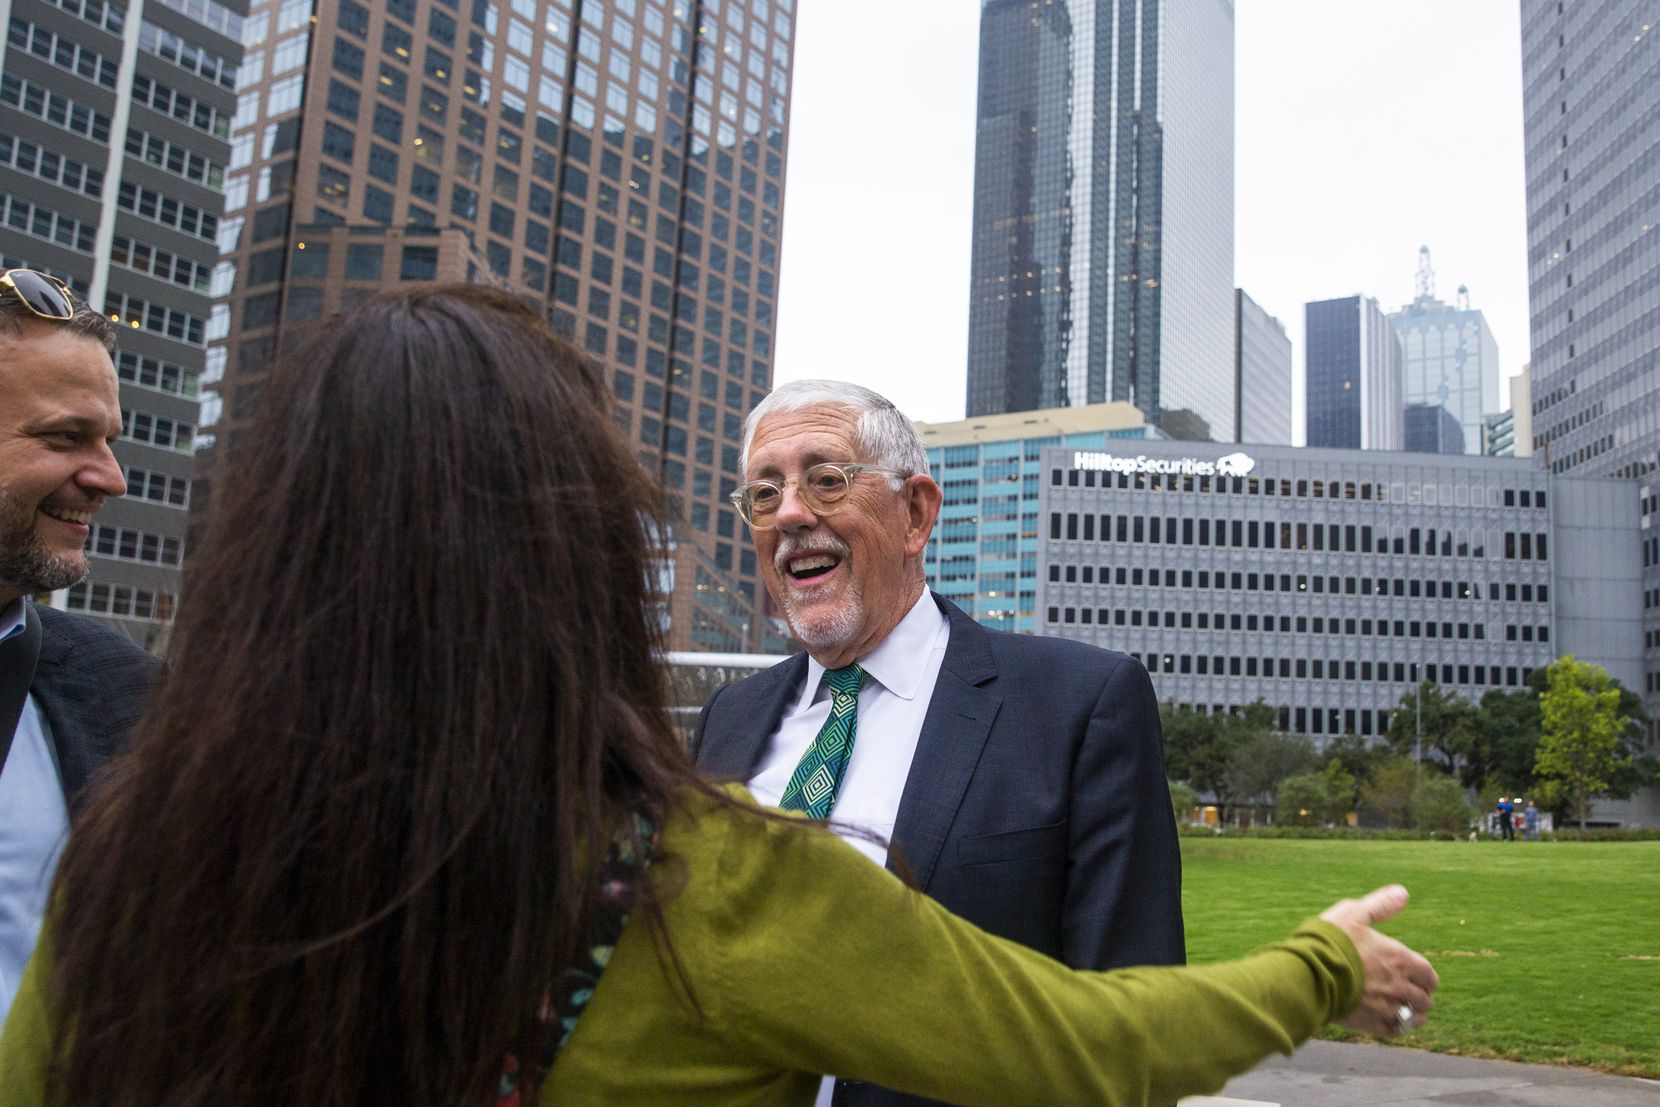 Well-wishers congratulate retiring Dallas Park and Recreation director Willis Winters following the opening ceremony for Pacific Plaza in downtown Dallas on Monday, Oct. 14, 2019. The plaza is the first of four new green spaces that will open by the end of 2022 with help from the nonprofit Parks for Downtown Dallas. (Lynda M. Gonzalez/The Dallas Morning News)